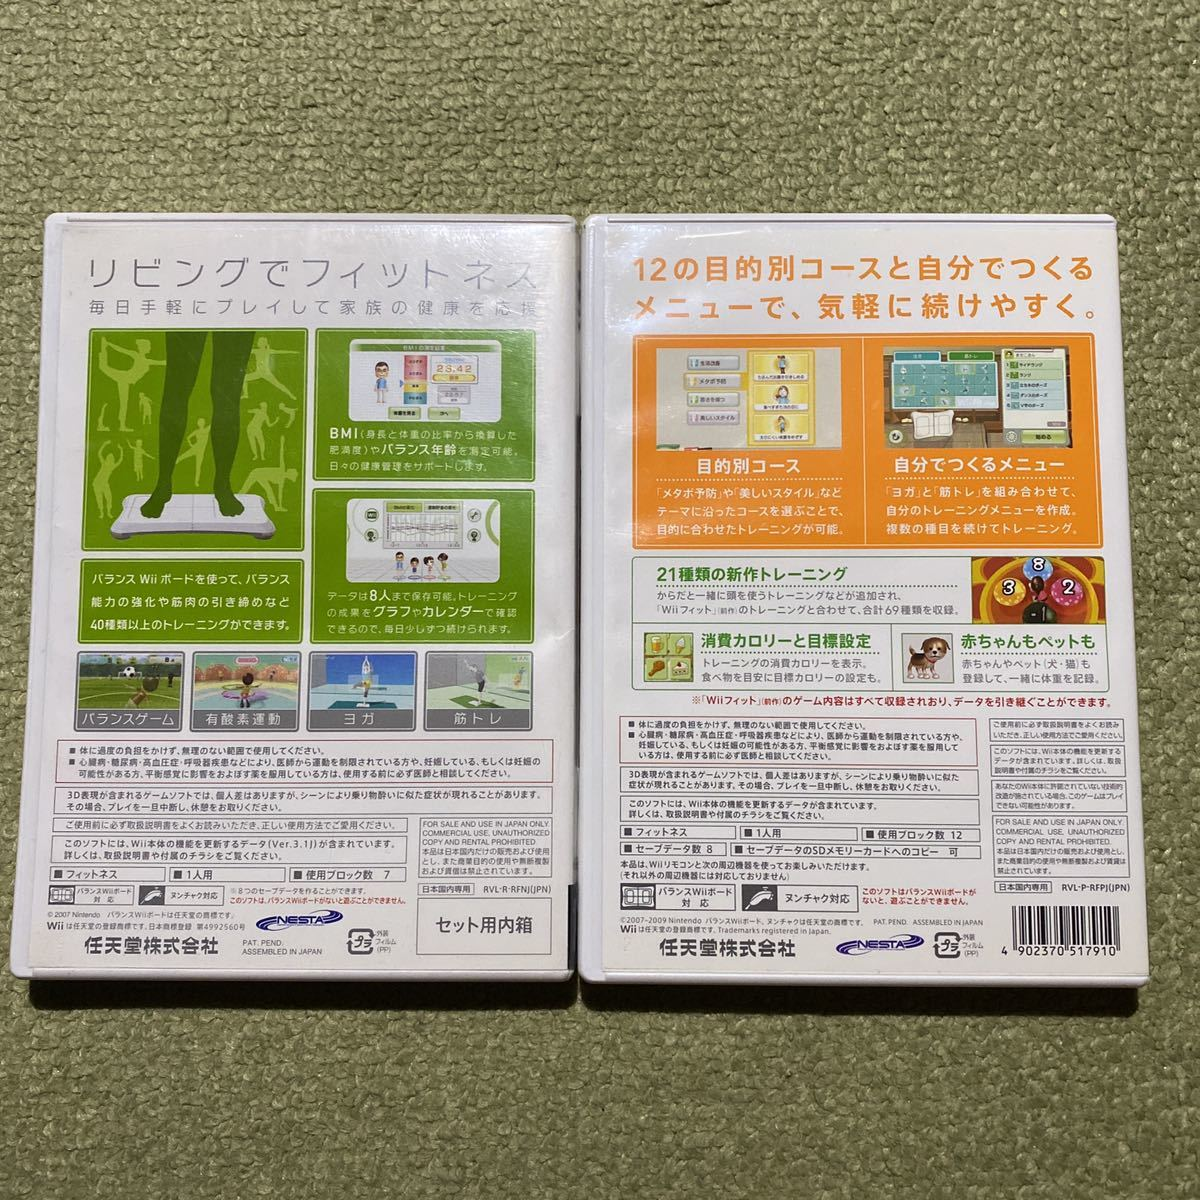 Wii Fit Wii Fit Plus 2本セットWiiソフト